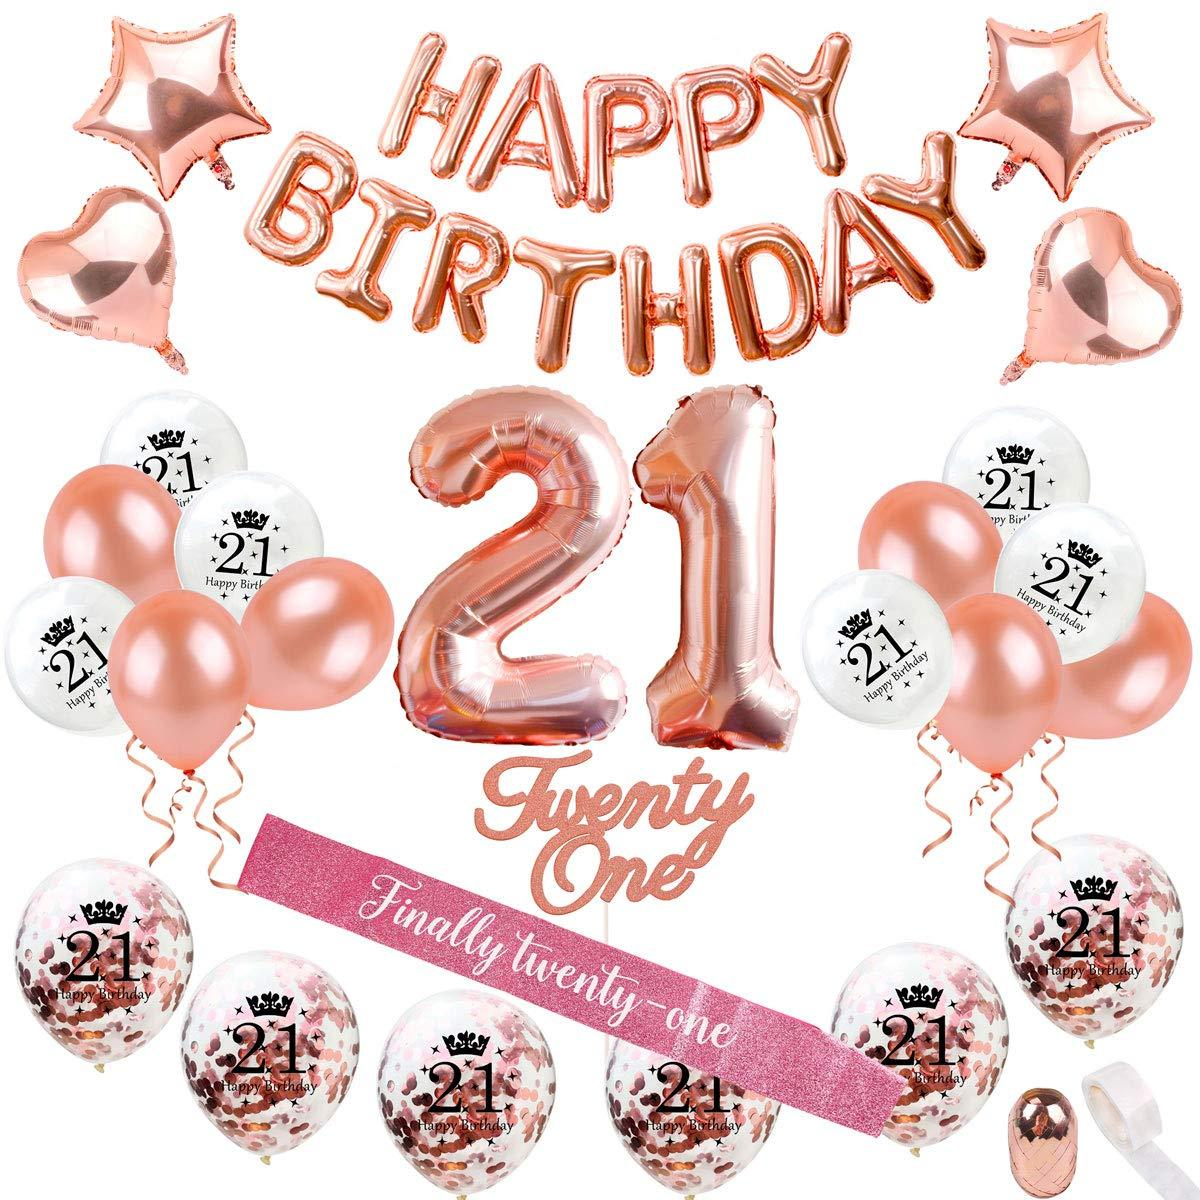 21 gold balloon clipart banner library stock 21st Birthday Decorations Party Supplies Rose Gold 21 Birthday Balloon banner library stock